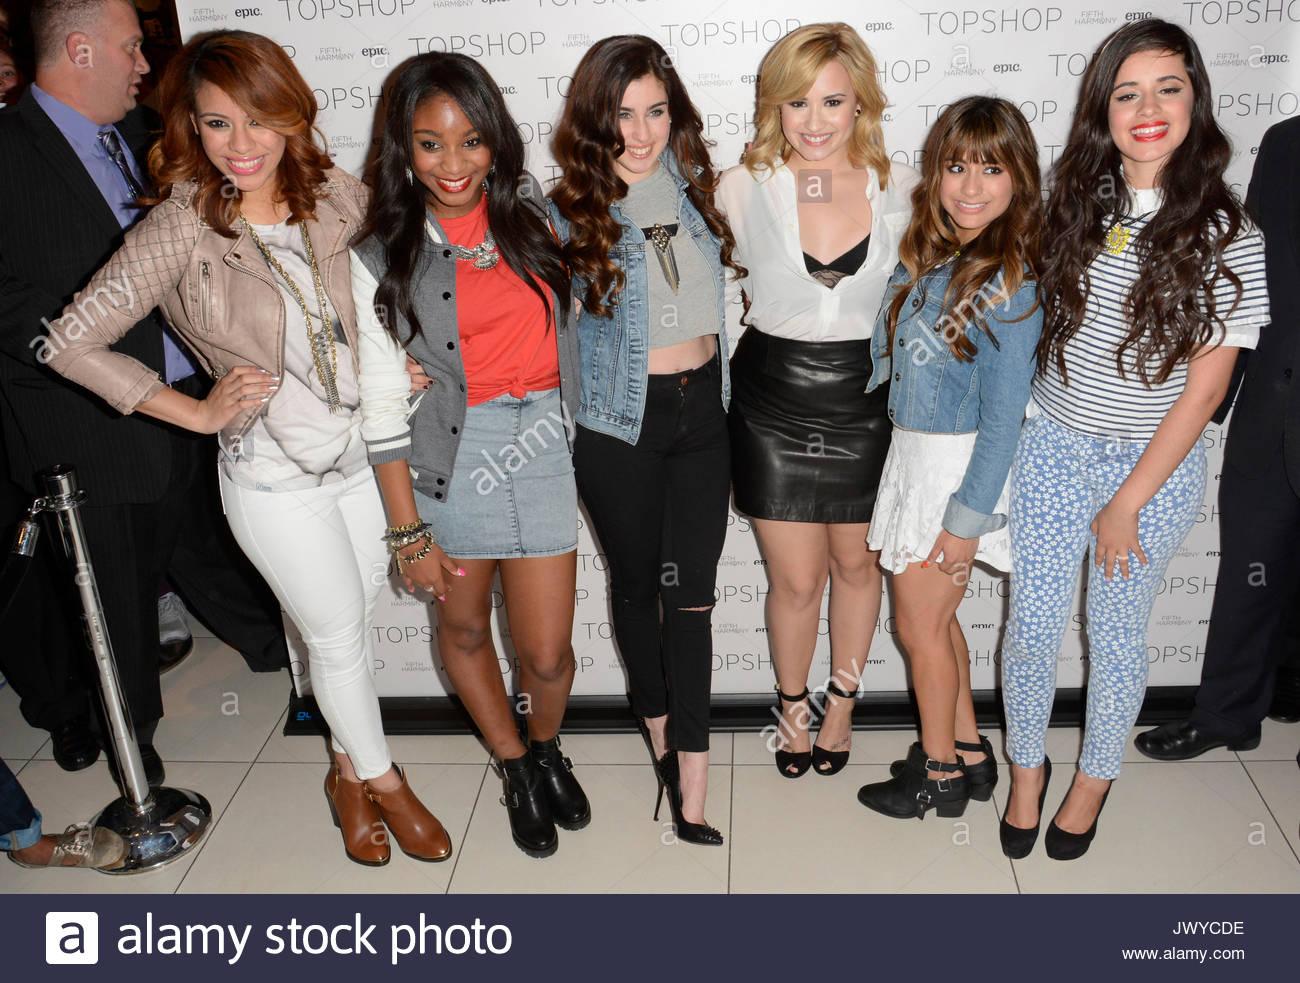 Demi lovato and fifth harmony demi lovato with x factor finalists demi lovato and fifth harmony demi lovato with x factor finalists fifth harmony at top shop in soho nyc for a fan meet and greet with a chance to win m4hsunfo